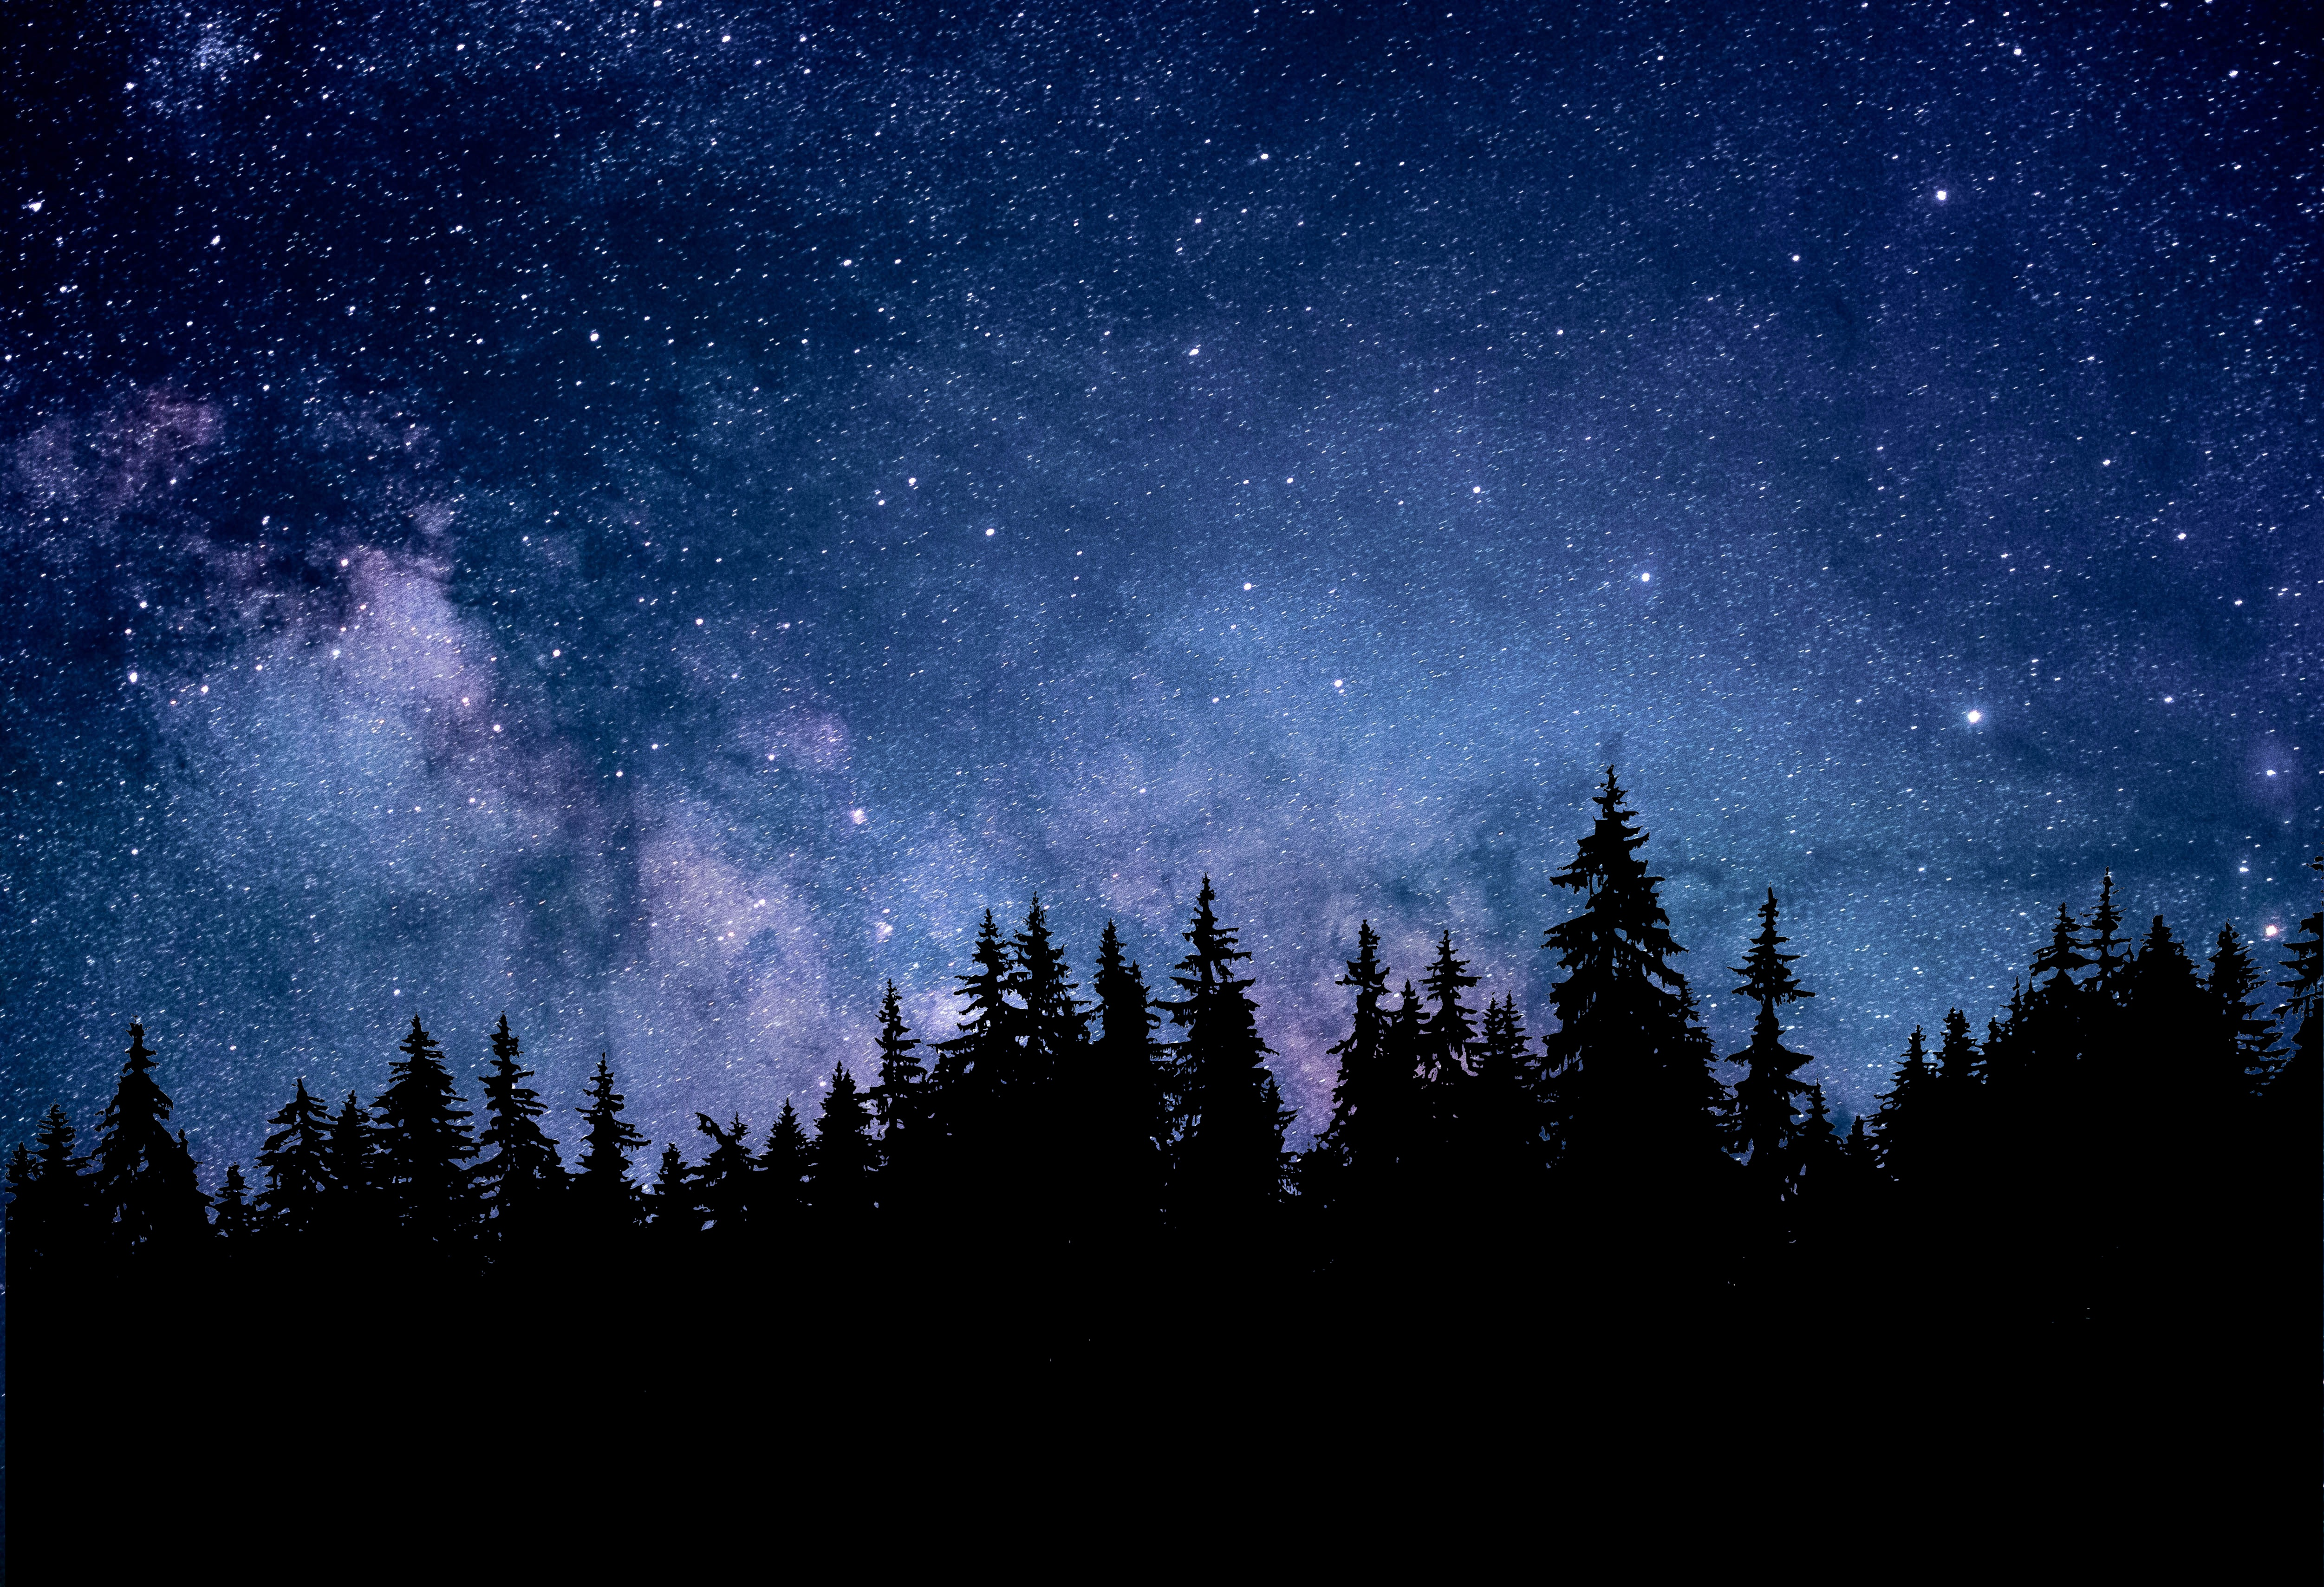 Night 4k Wallpaper Starry Sky Forest Silhouette Astronomy Cosmos 5k Nature 1679